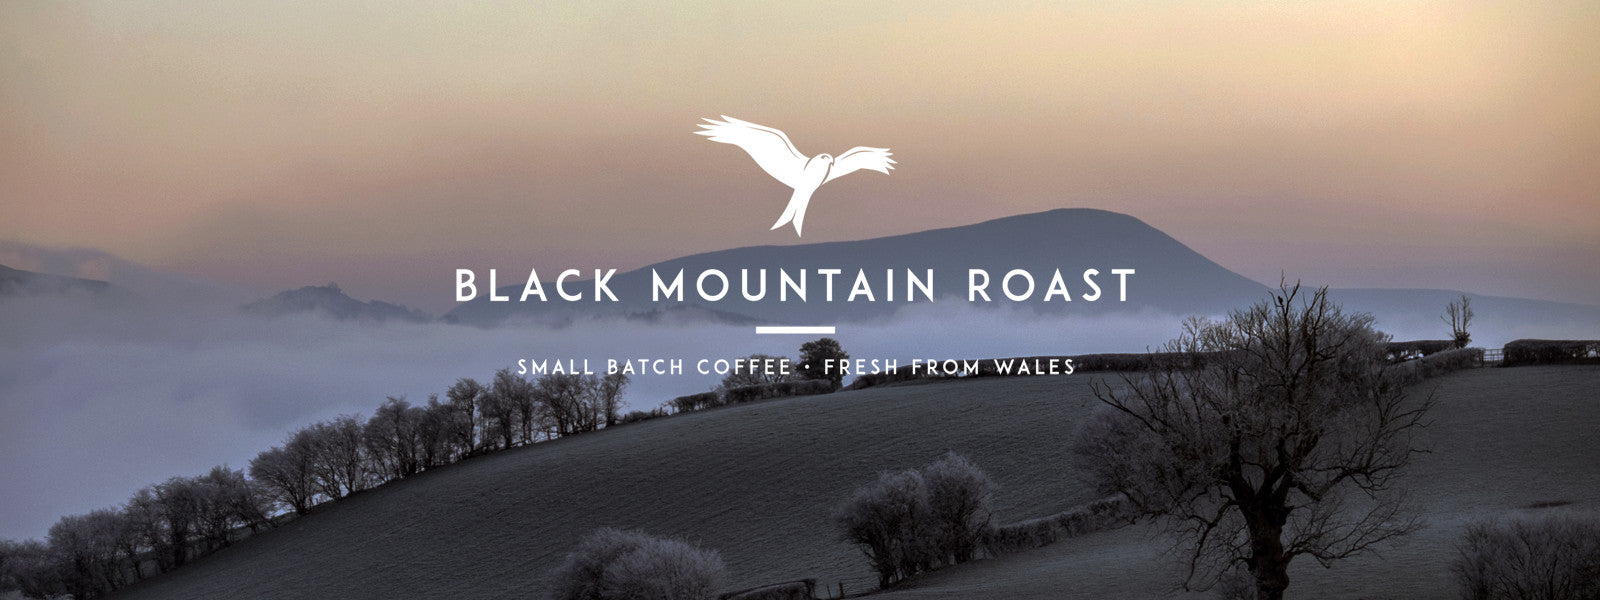 Black Mountain Roast